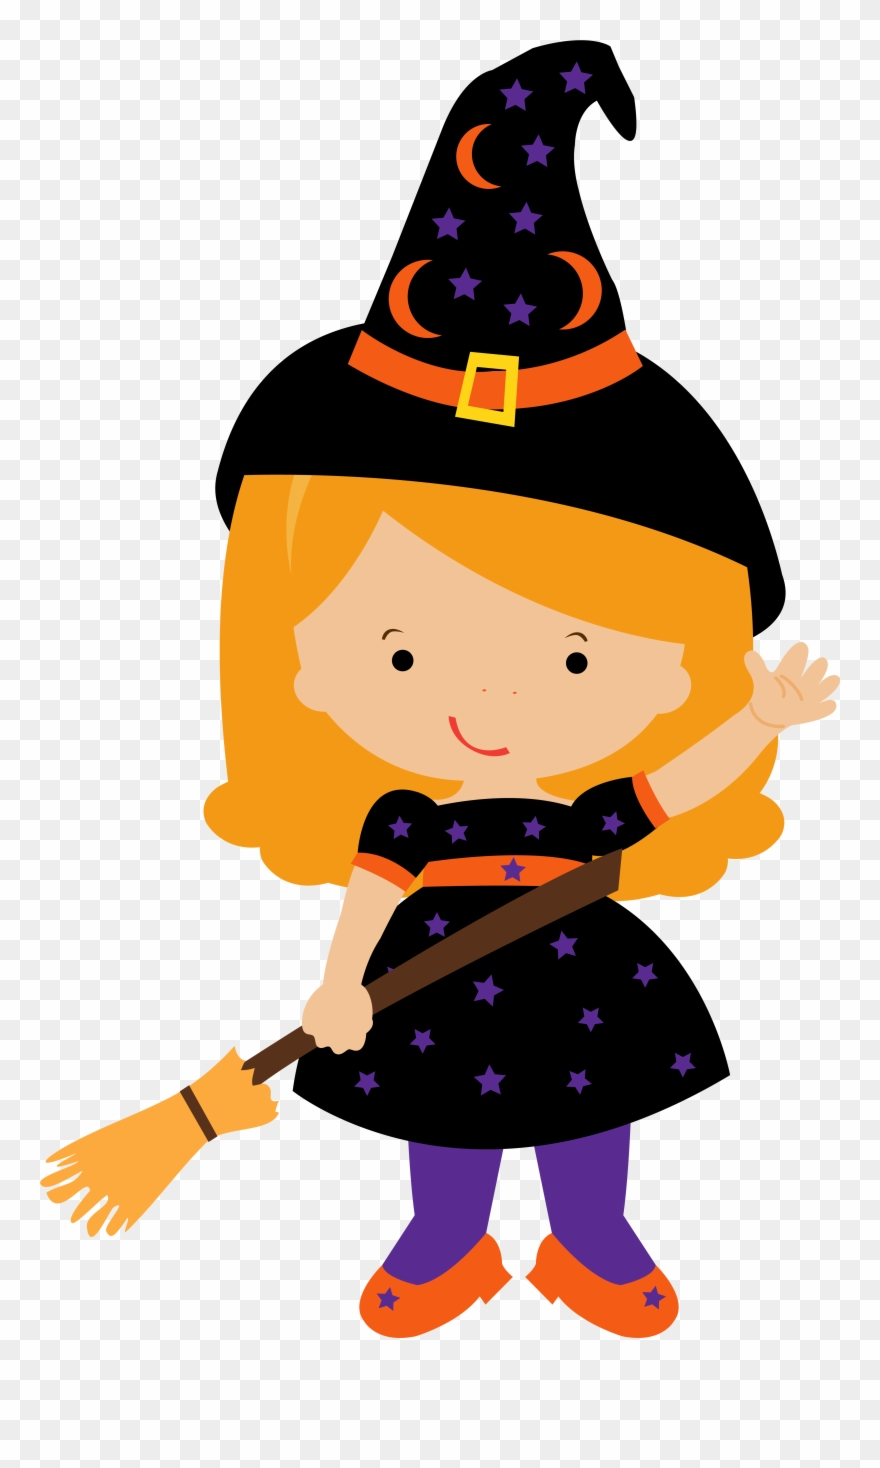 hight resolution of free halloween witch clipart 13 clip art transparent background witch clipart png download